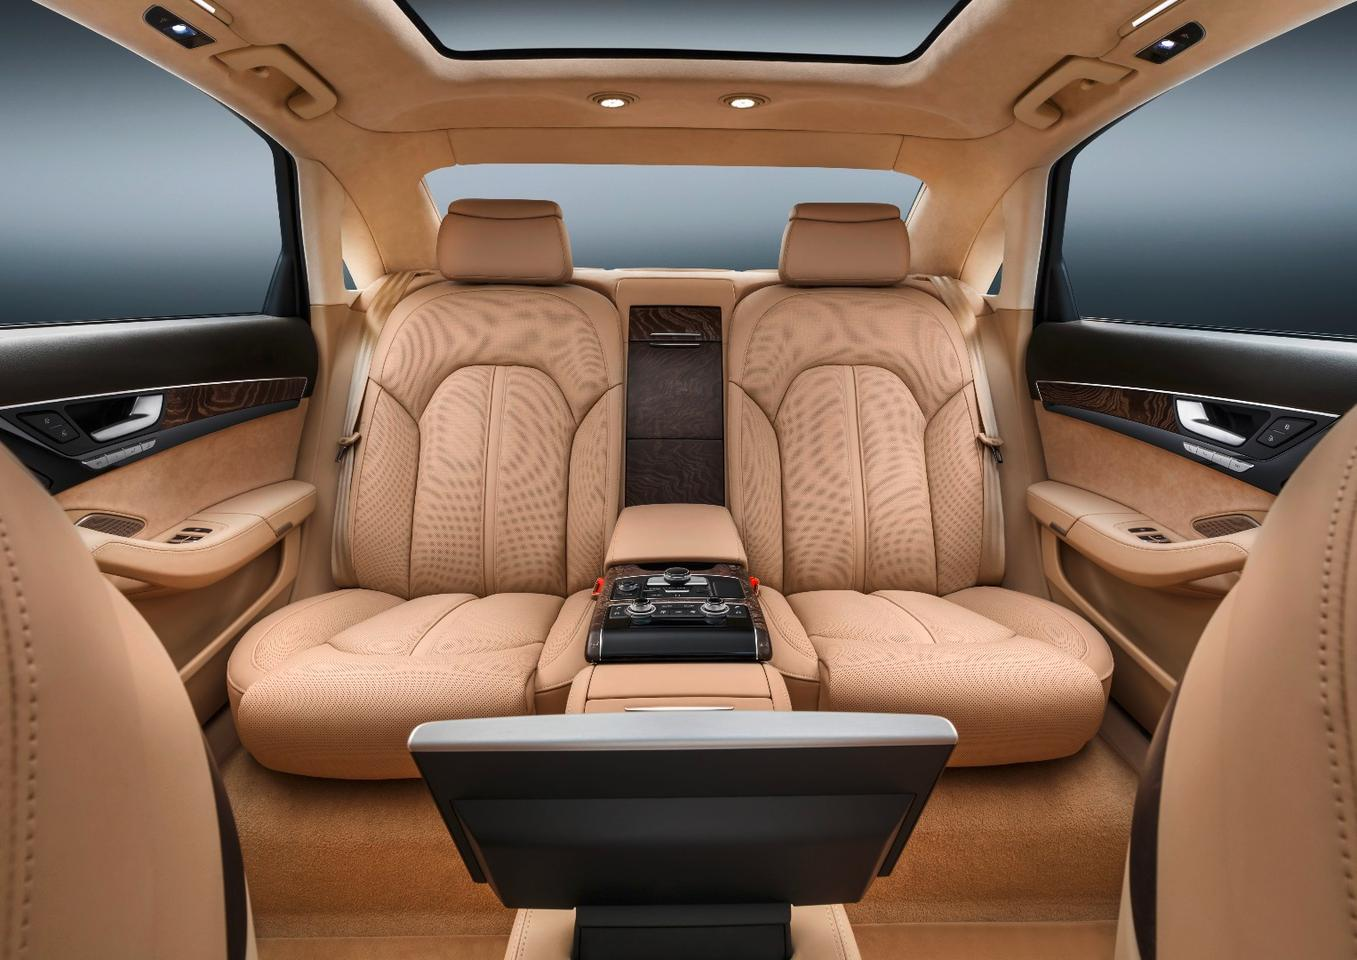 Rear seat passengers are treated to adjustable, supple leather seats